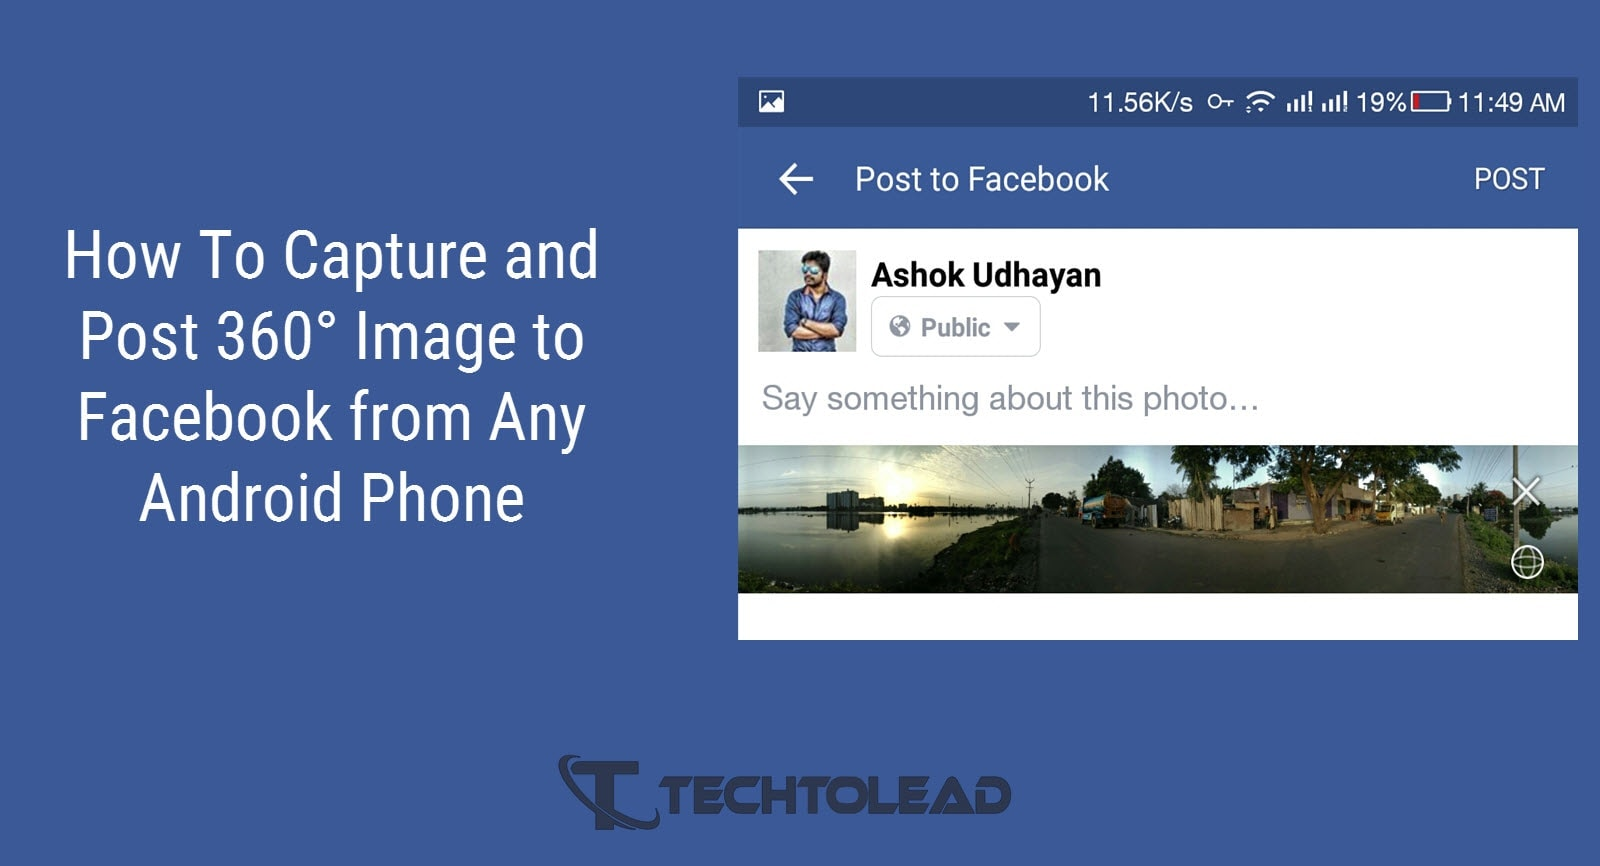 How To Capture and Post 360° Image to Facebook from Any Android Phone